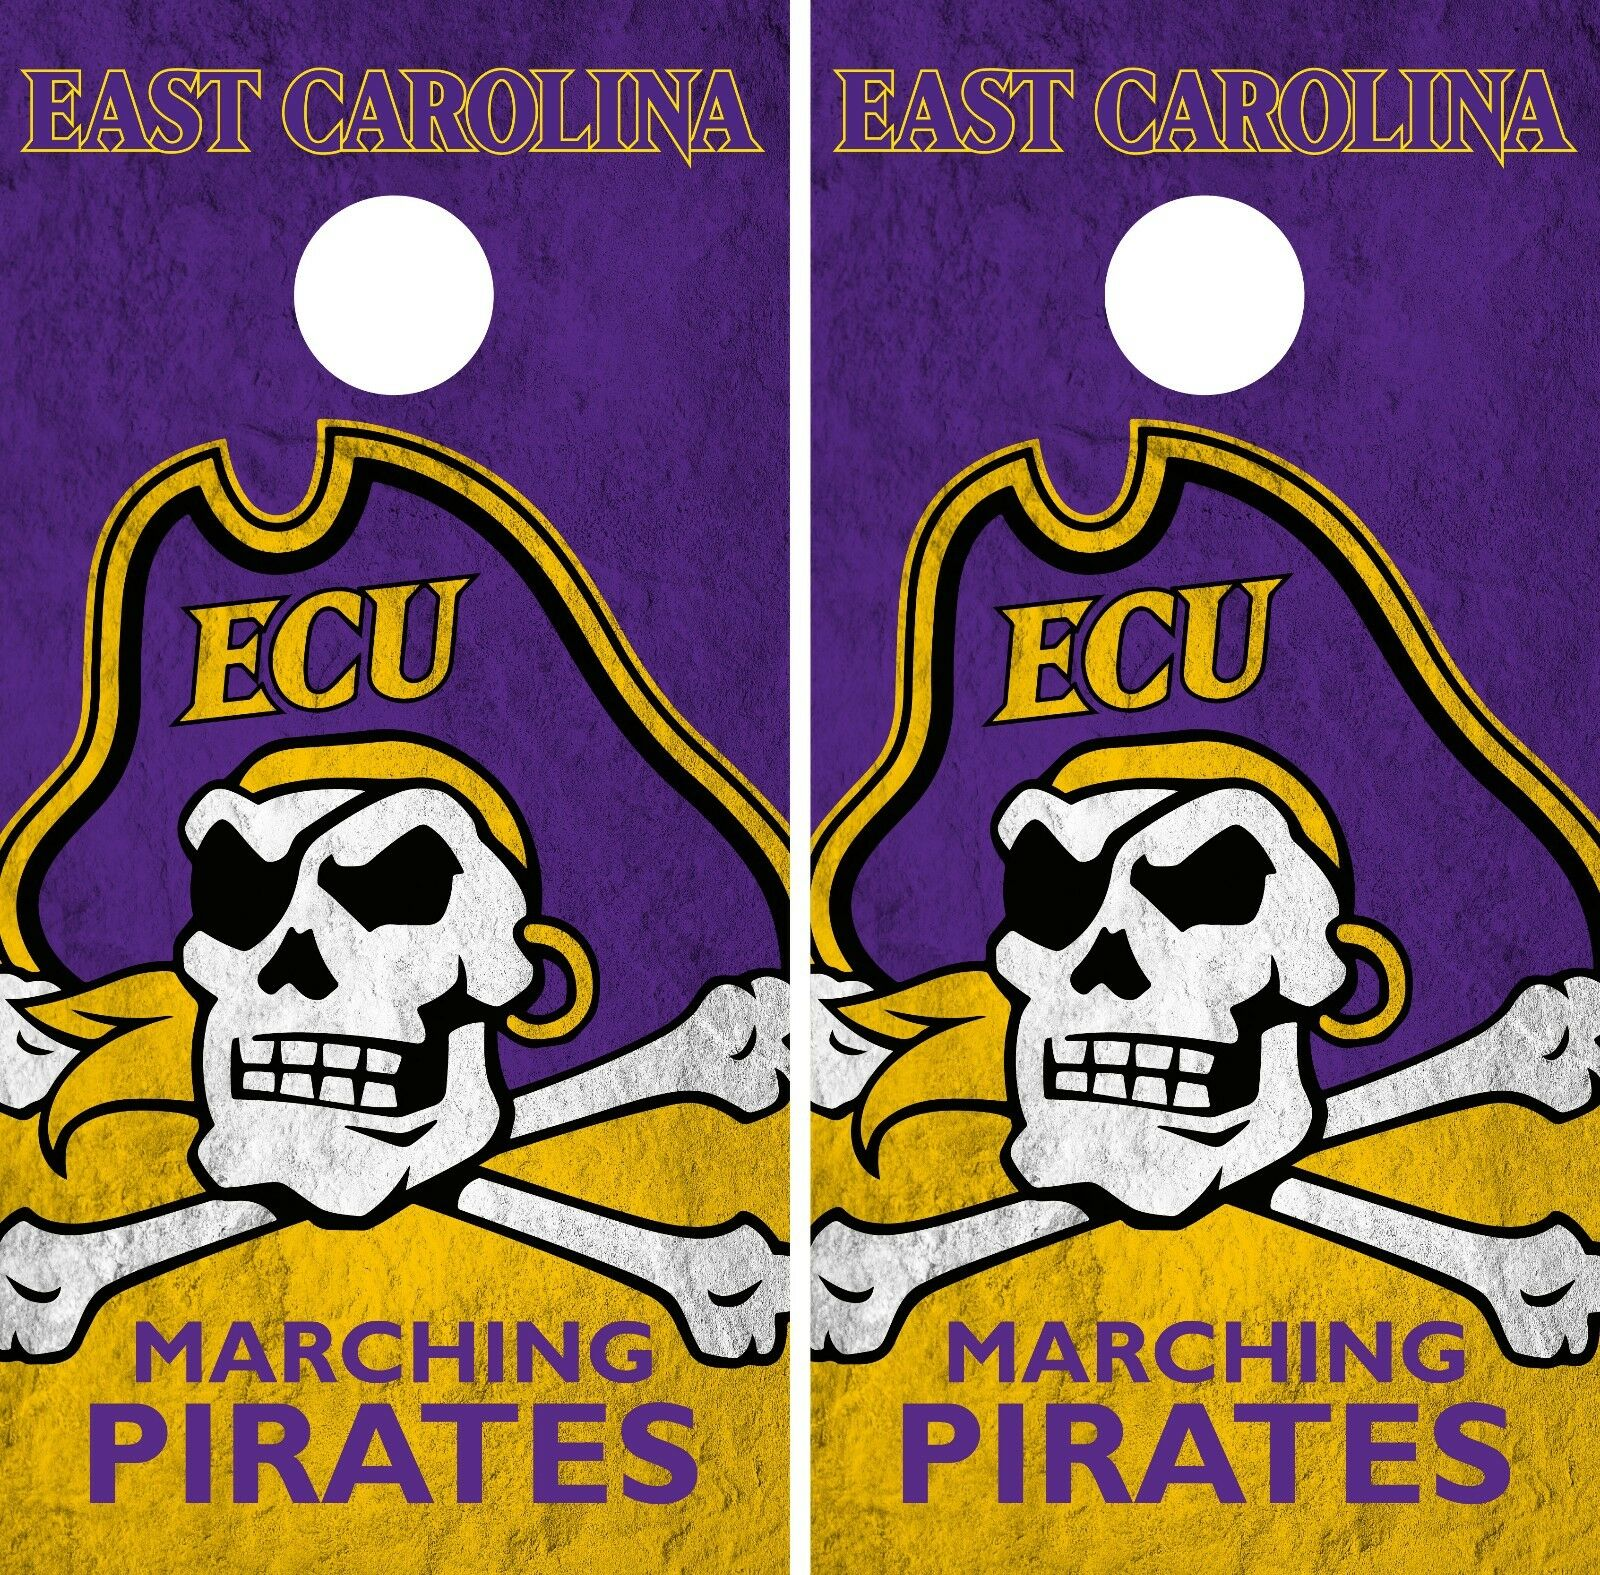 East Carolina Pirates Cornhole Wrap  NCAA College Game Skin Vinyl Decal Set CO769  hot limited edition